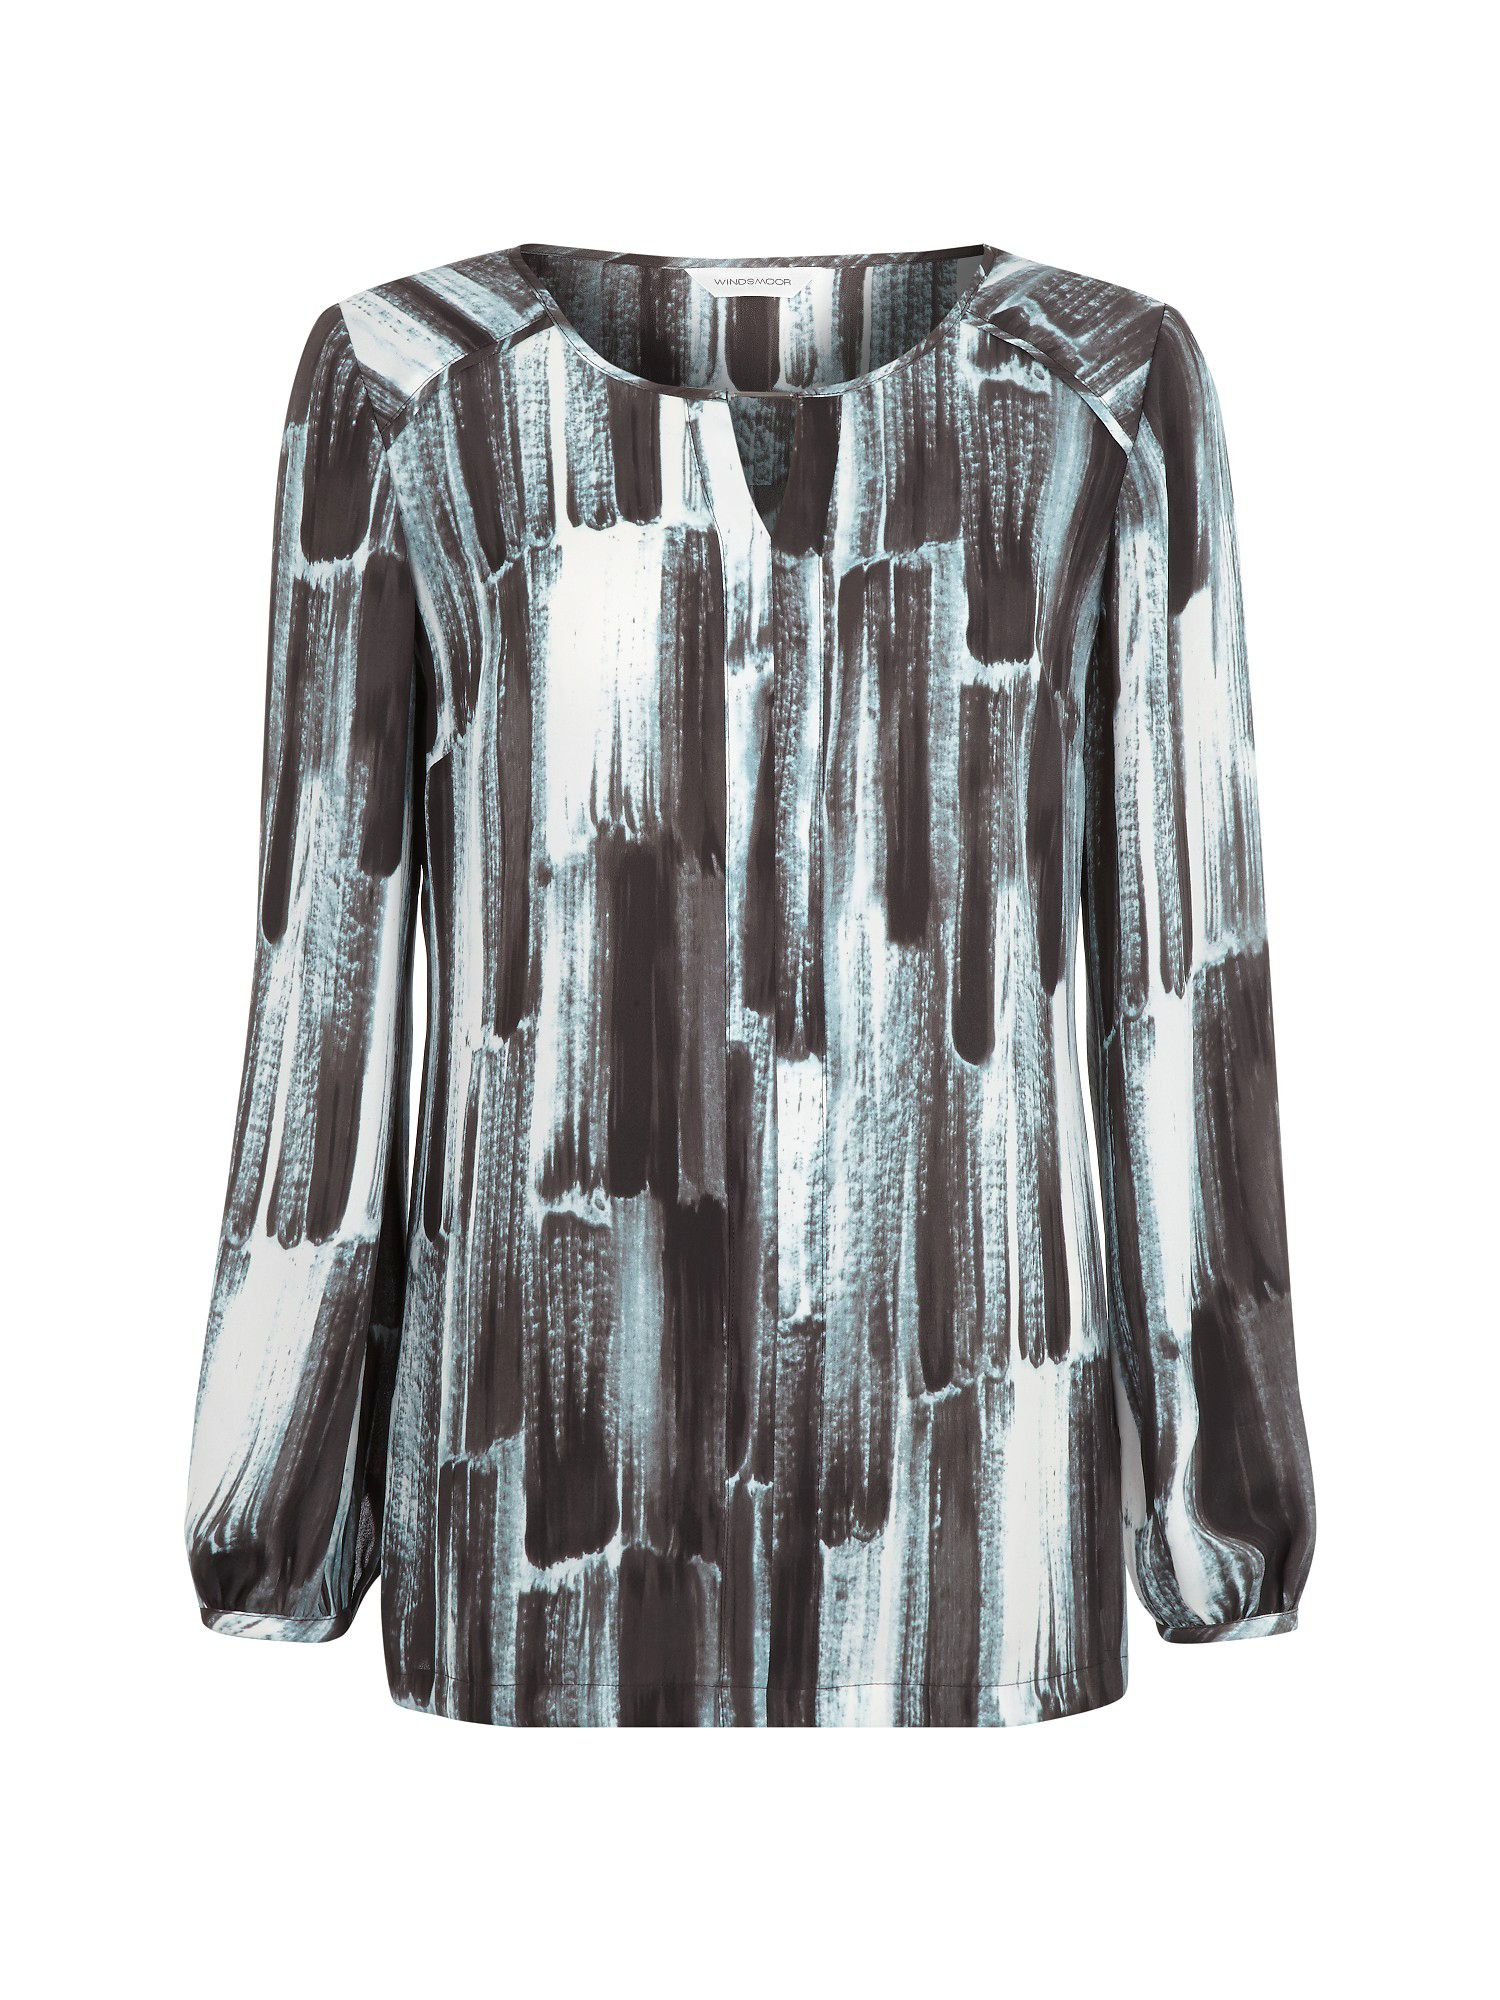 Risley printed tunic blouse